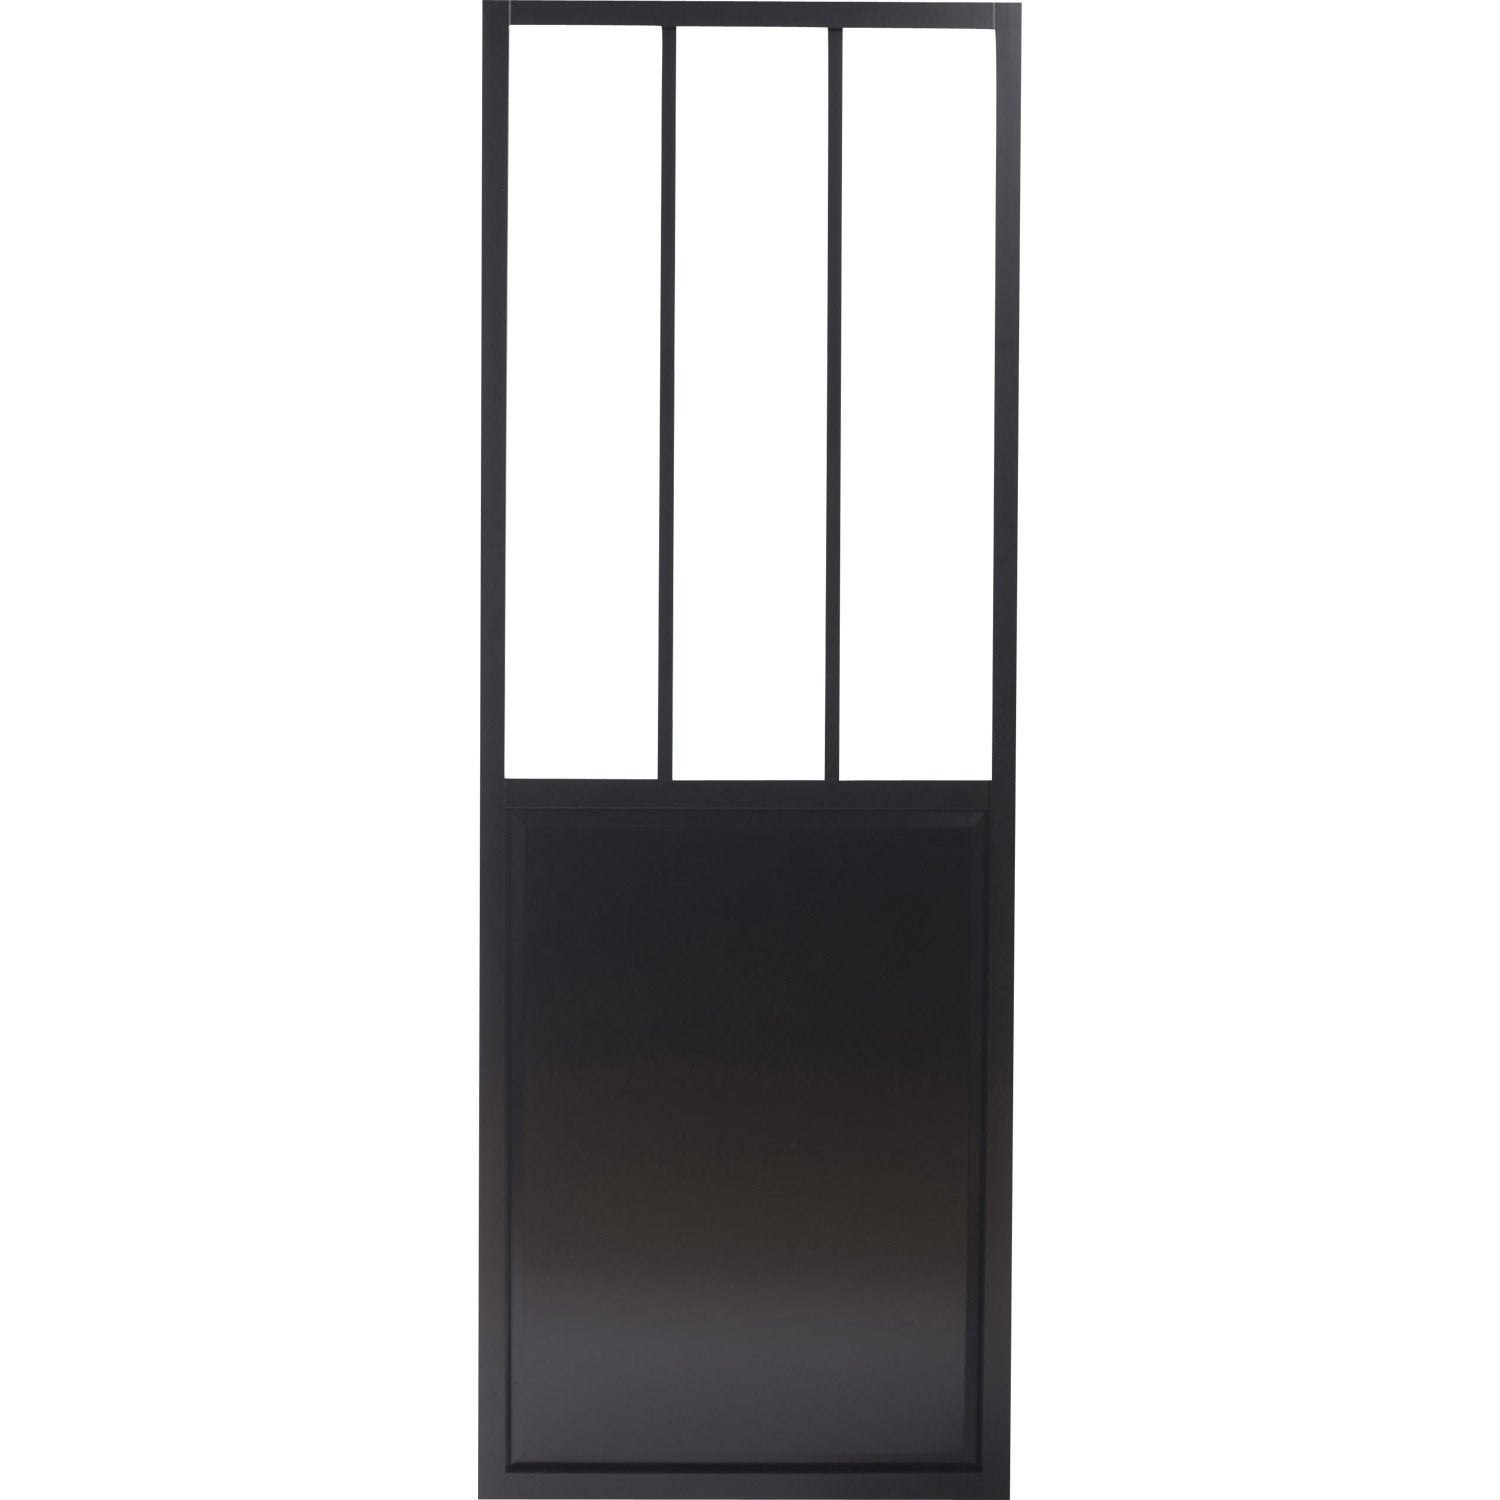 Porte coulissante alu noir fonc verre tremp givr for Type de porte